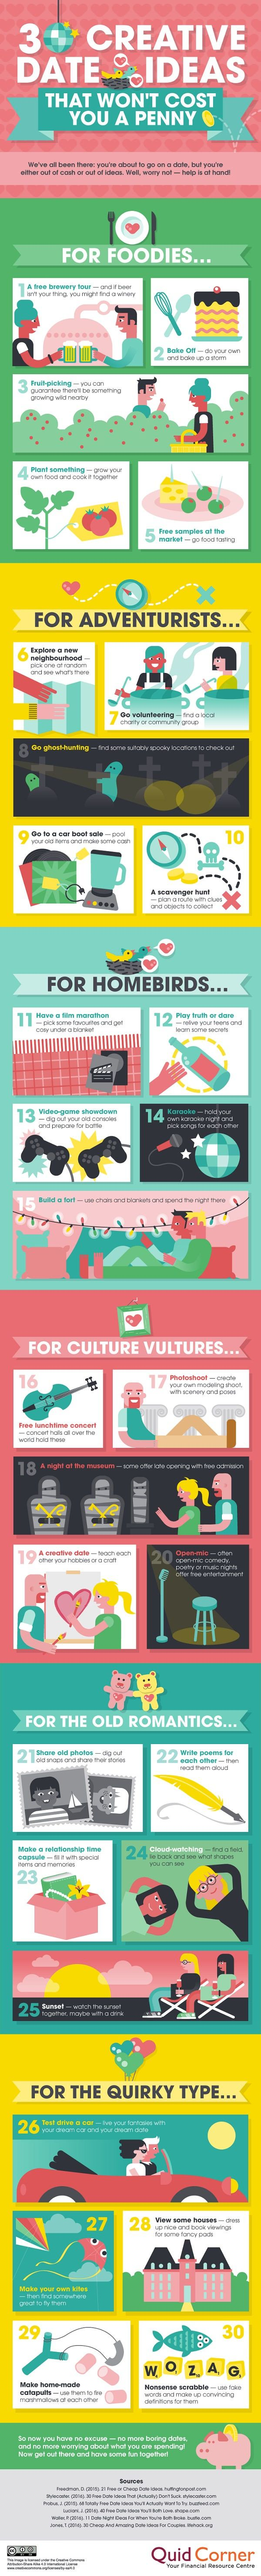 30 Creative Date Ideas That Won't Cost You A Penny - 9GAG